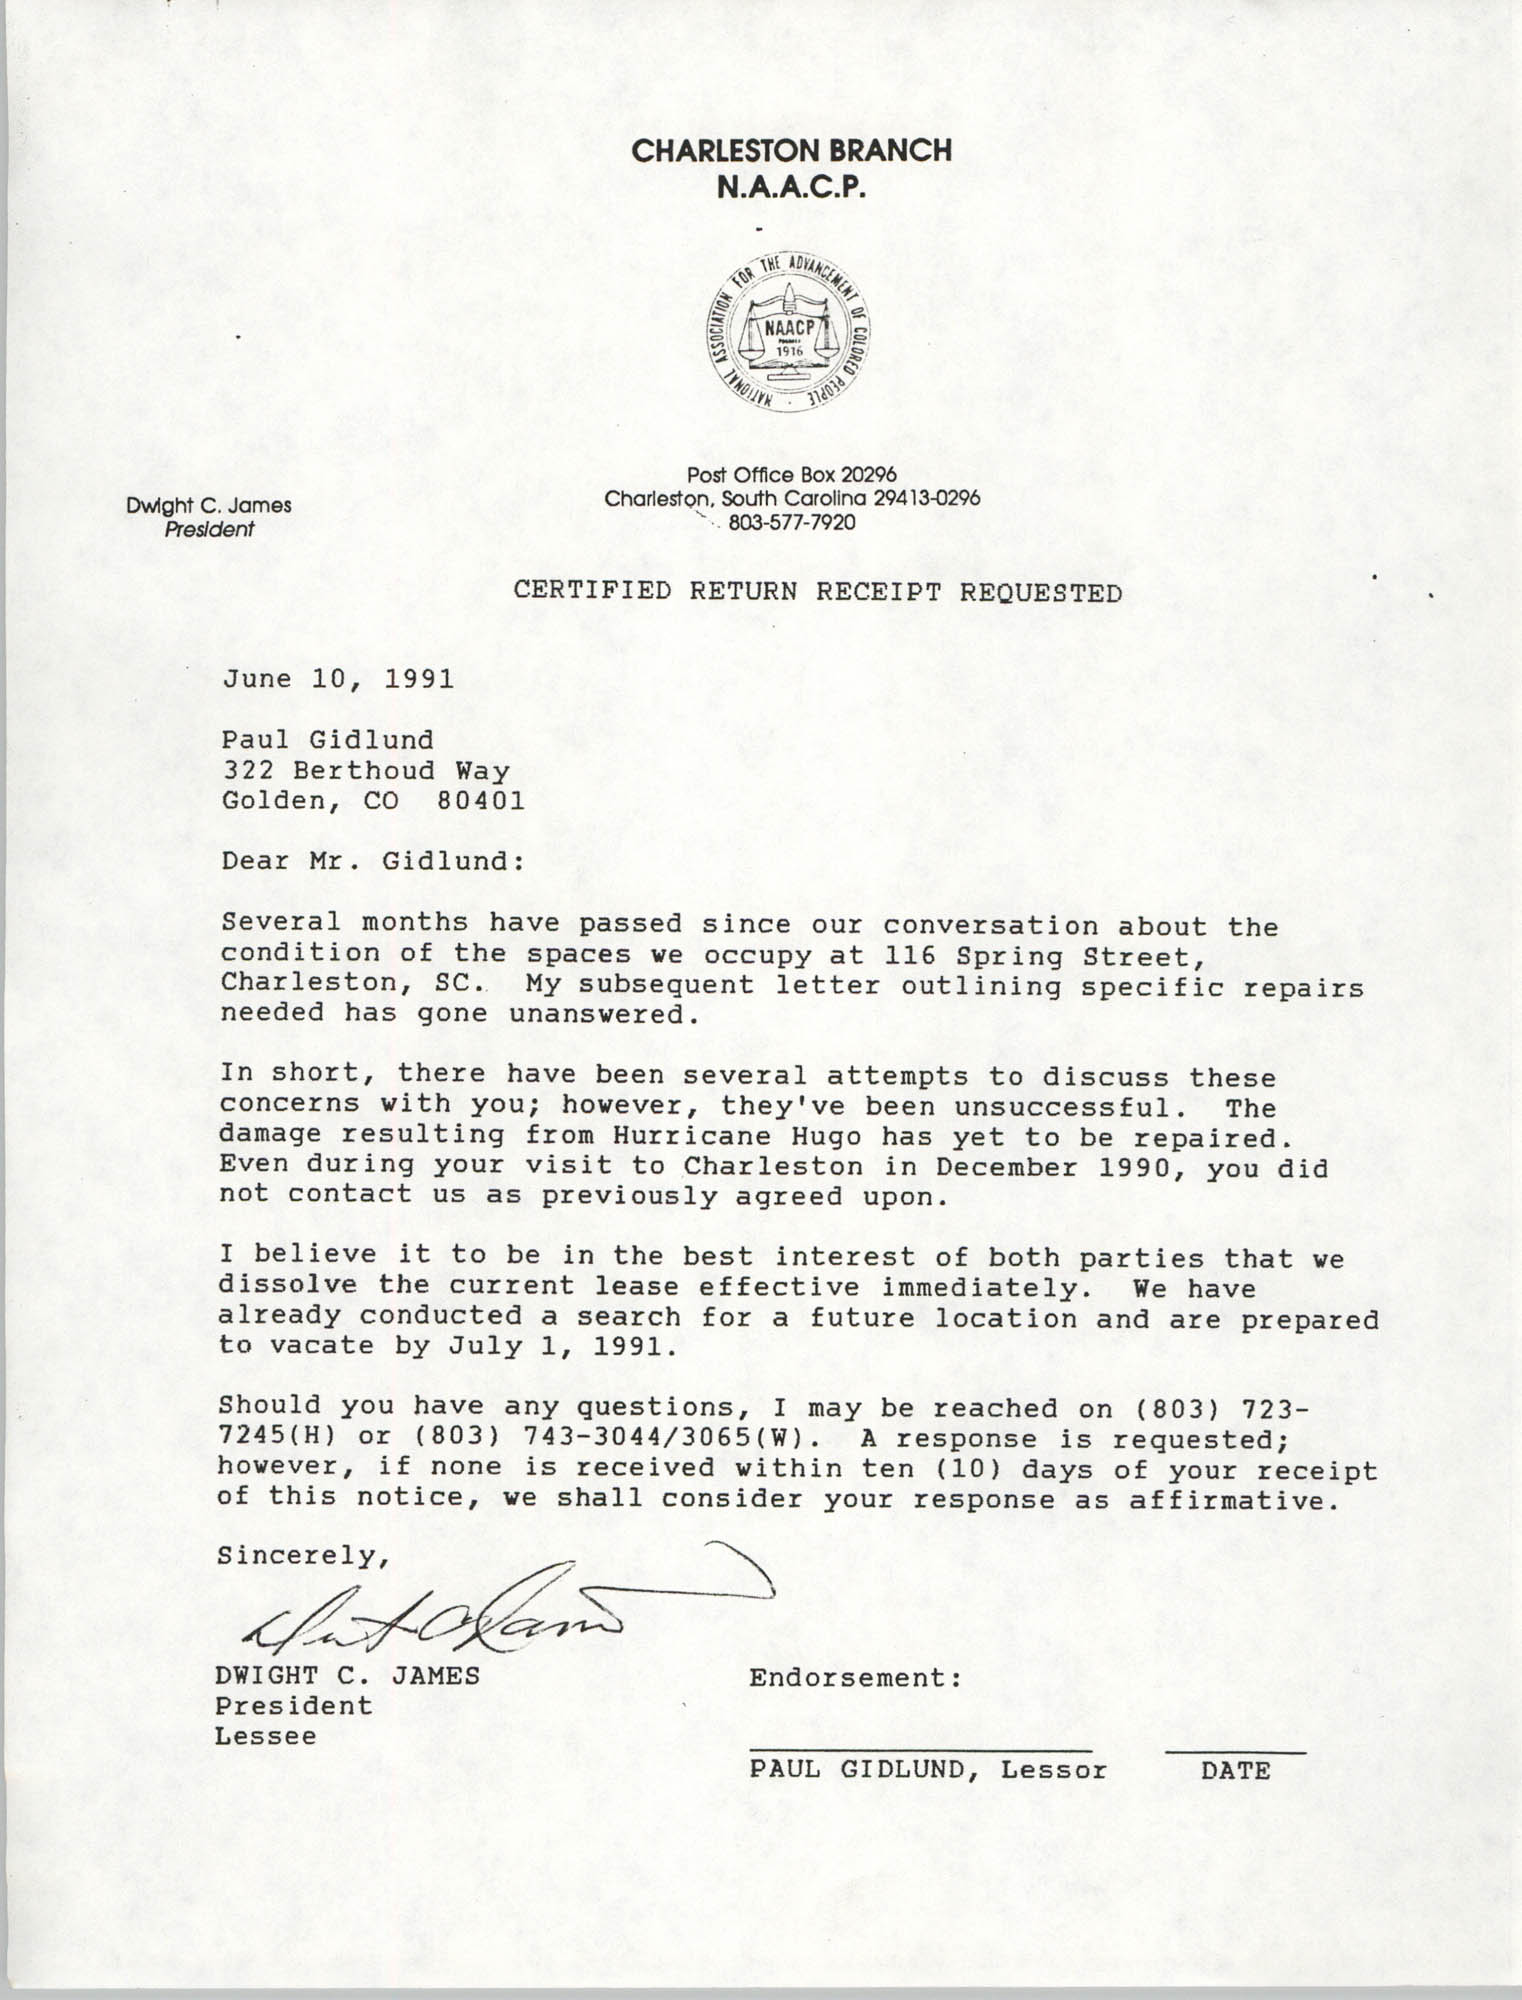 Letter from Dwight C. James to Paul Gidlund, June 10, 1991